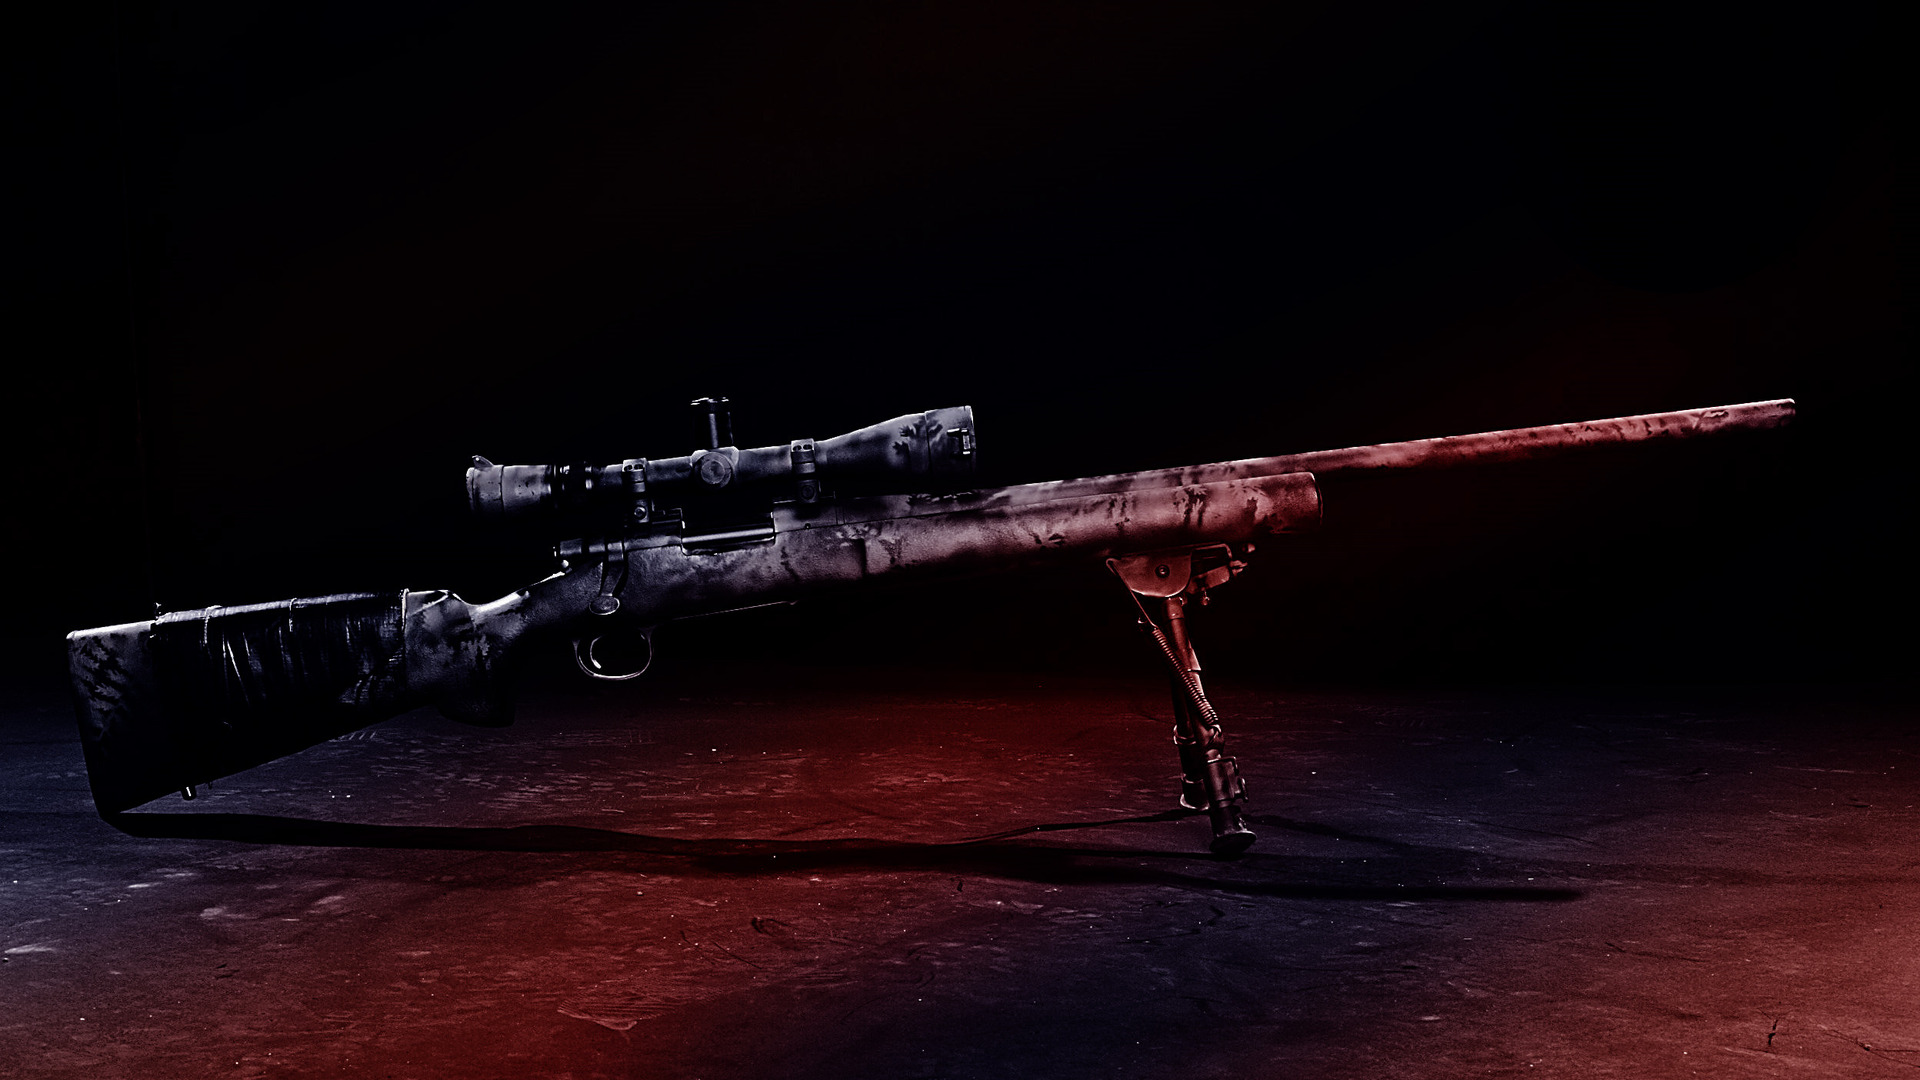 Download Sniper Rifle Wallpaper The Quotes Land 1920x1080